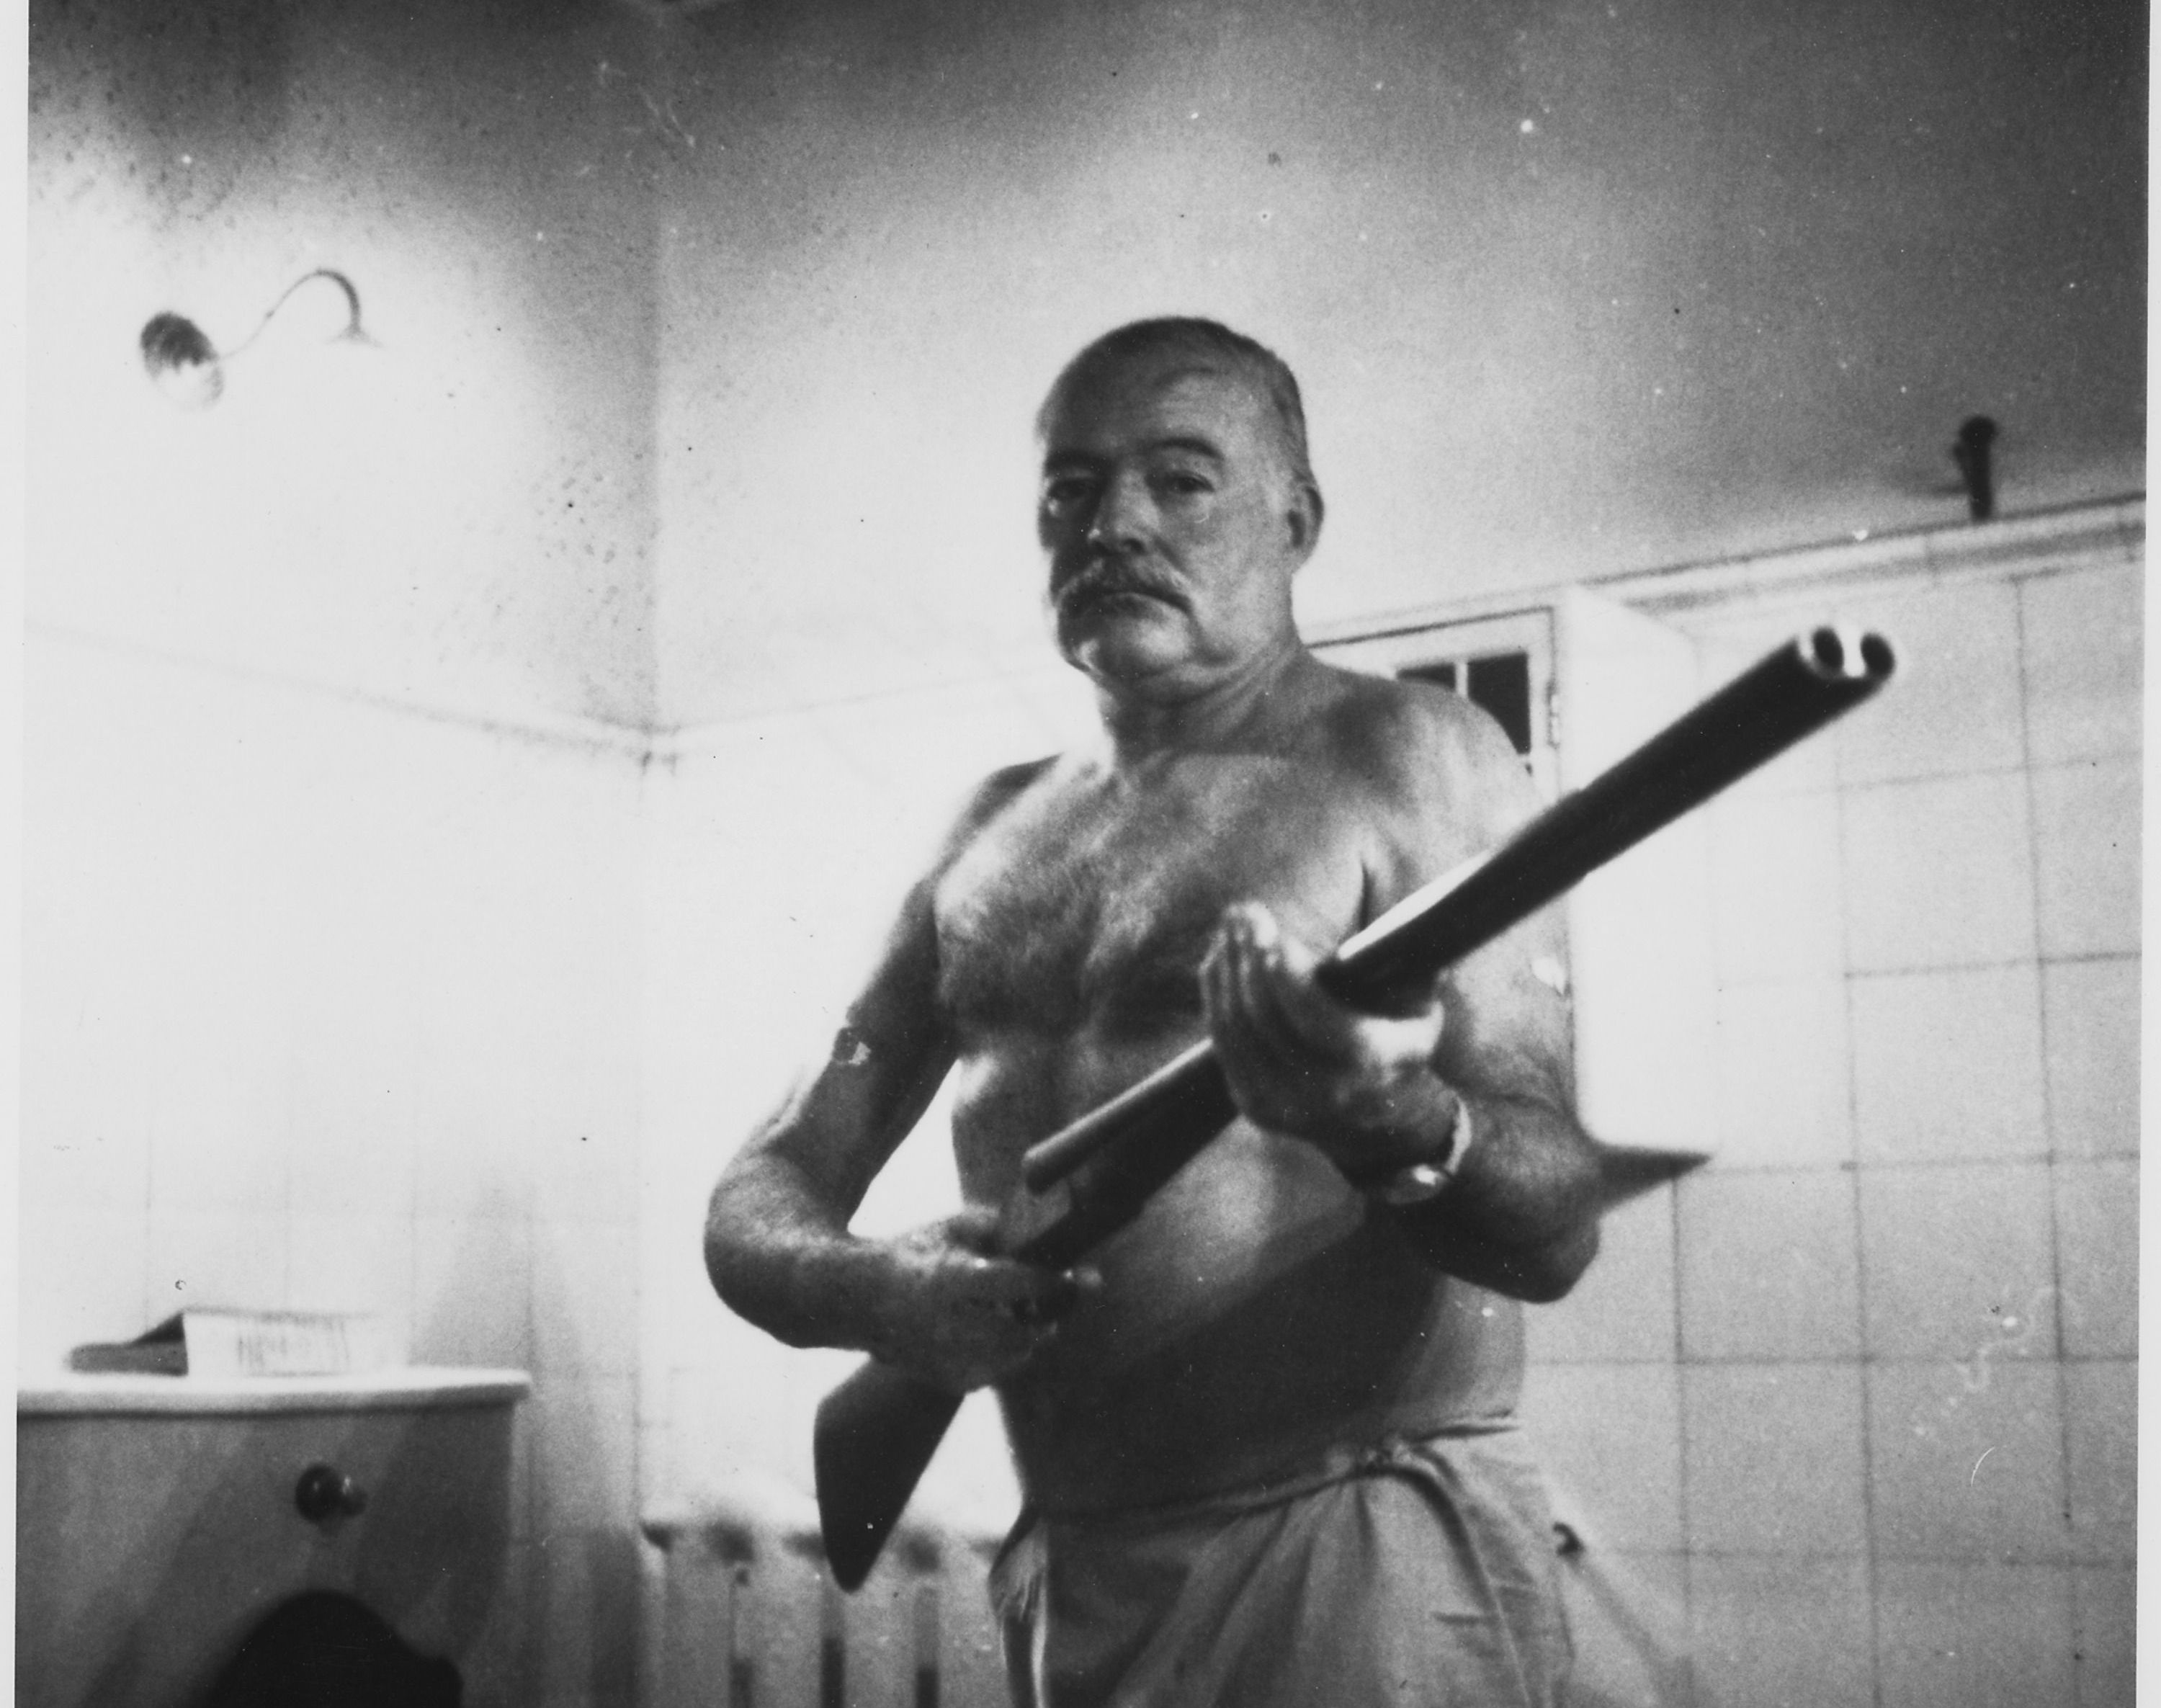 Does Ernest Hemingway Get A Pass For His Anti-Semitism?